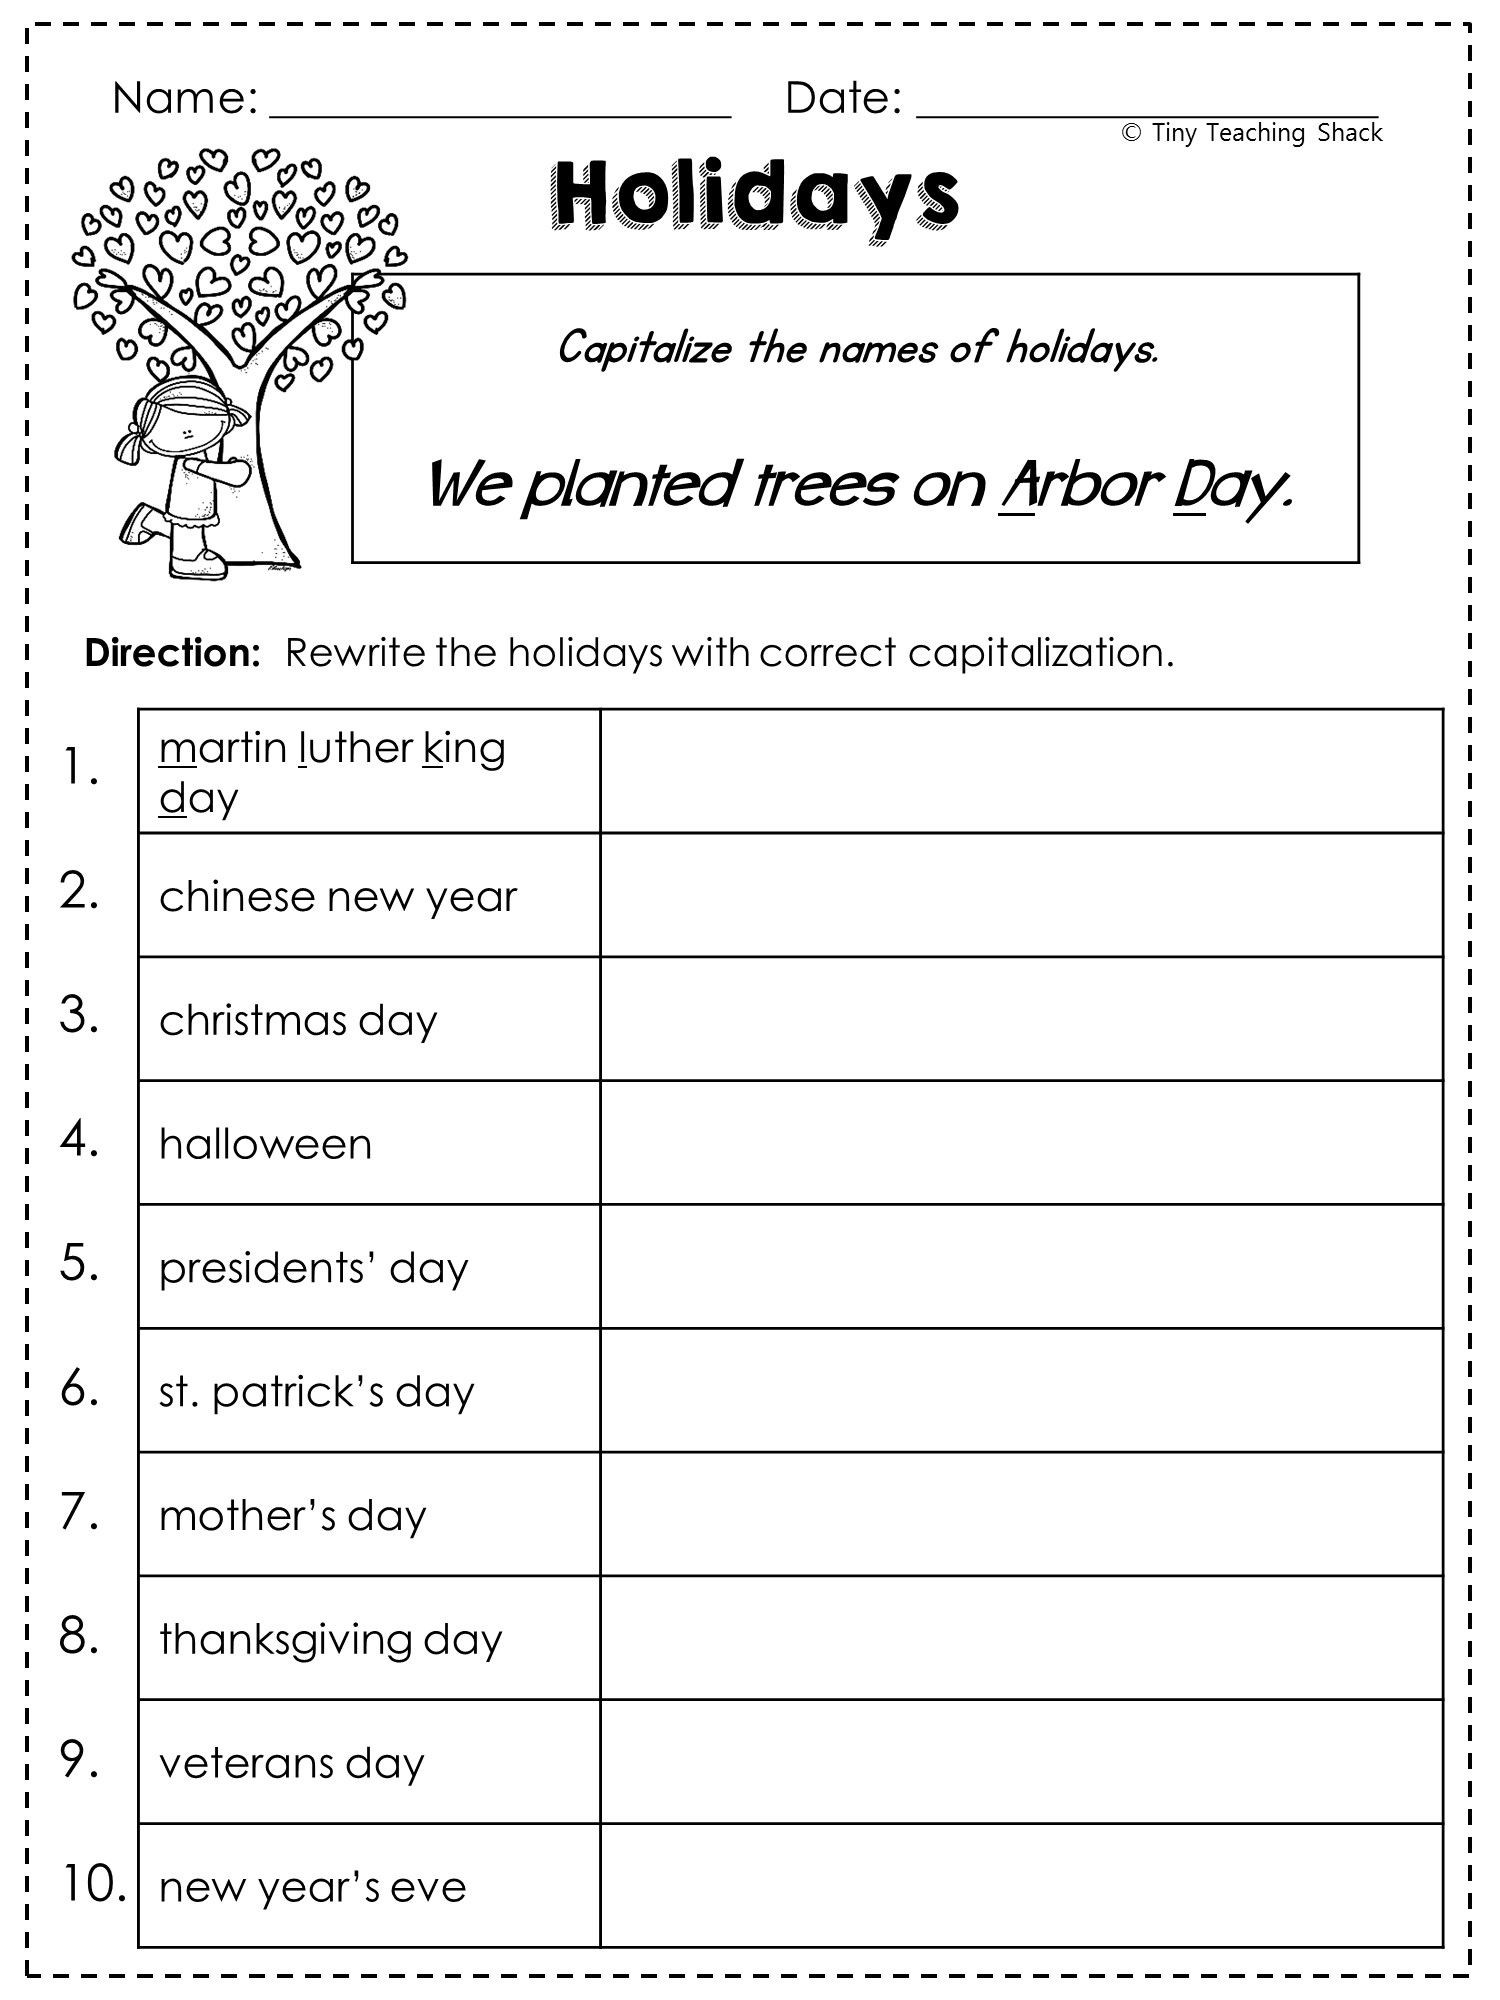 Pronoun Worksheets for 2nd Grade Free Pronoun Worksheet for 2nd Grade